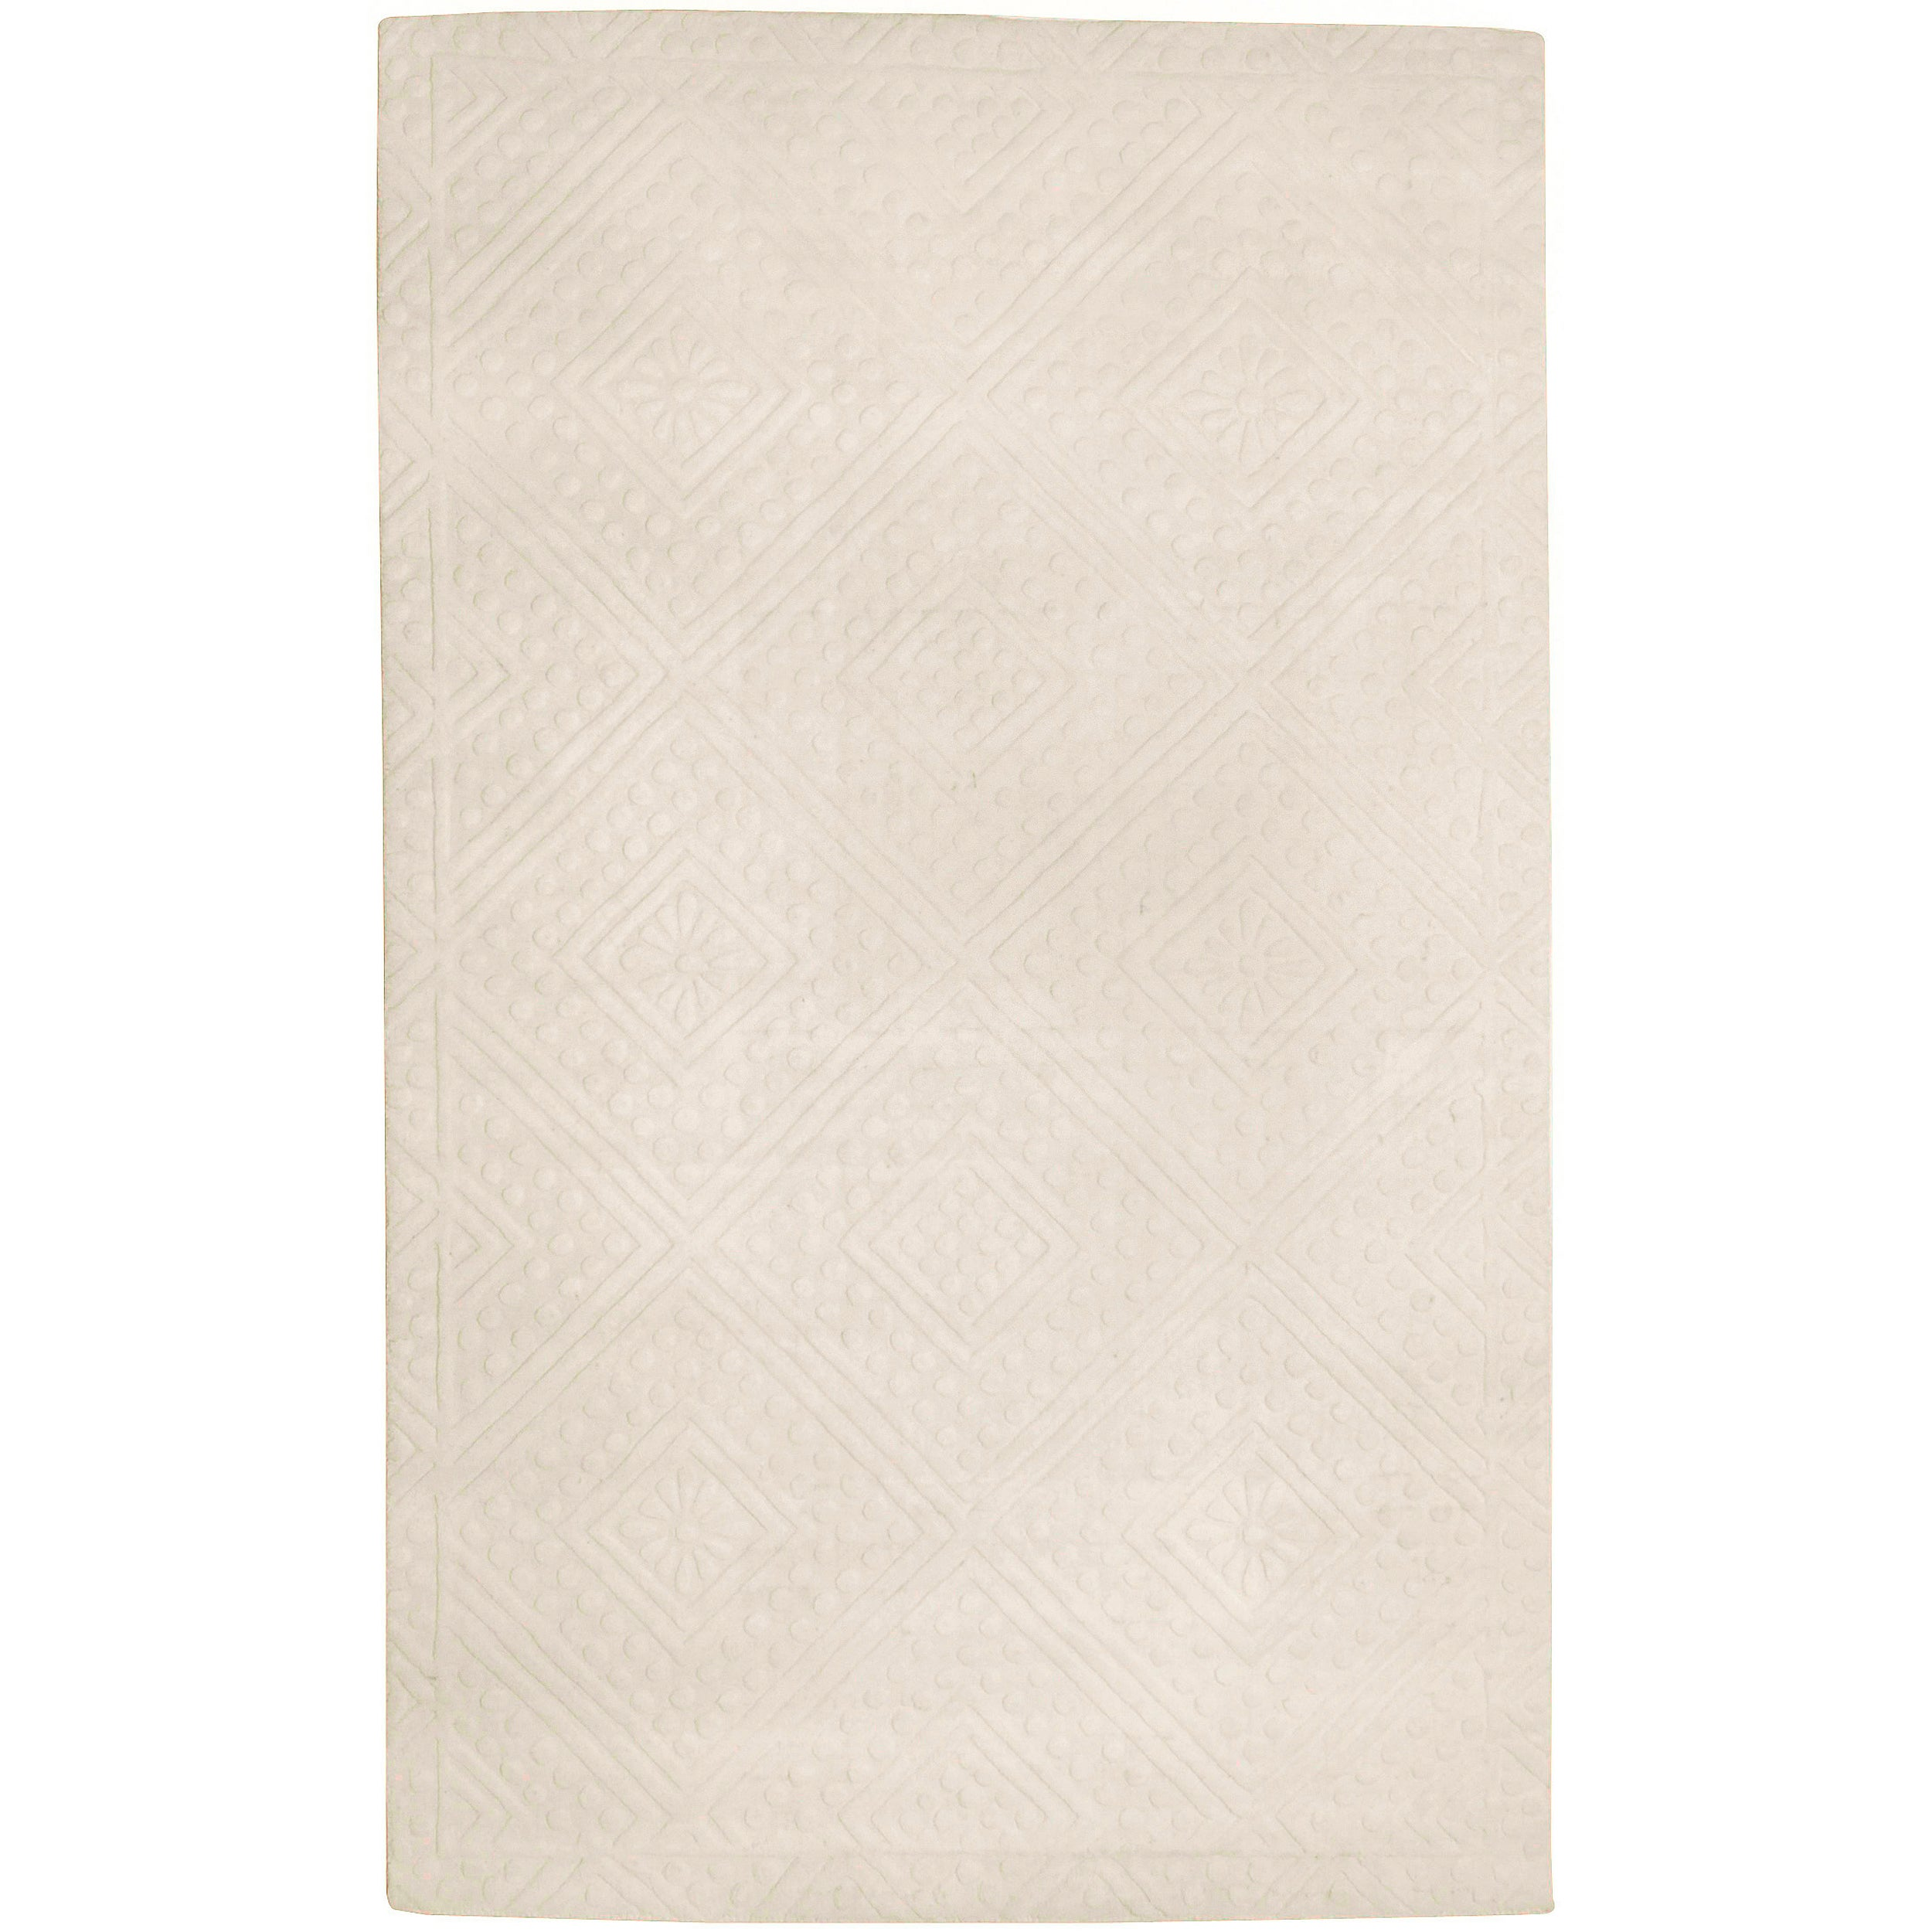 Smithsonian Hand-tufted Rutherglen Ivory Geometric Diamond Wool Rug (8' X 11')